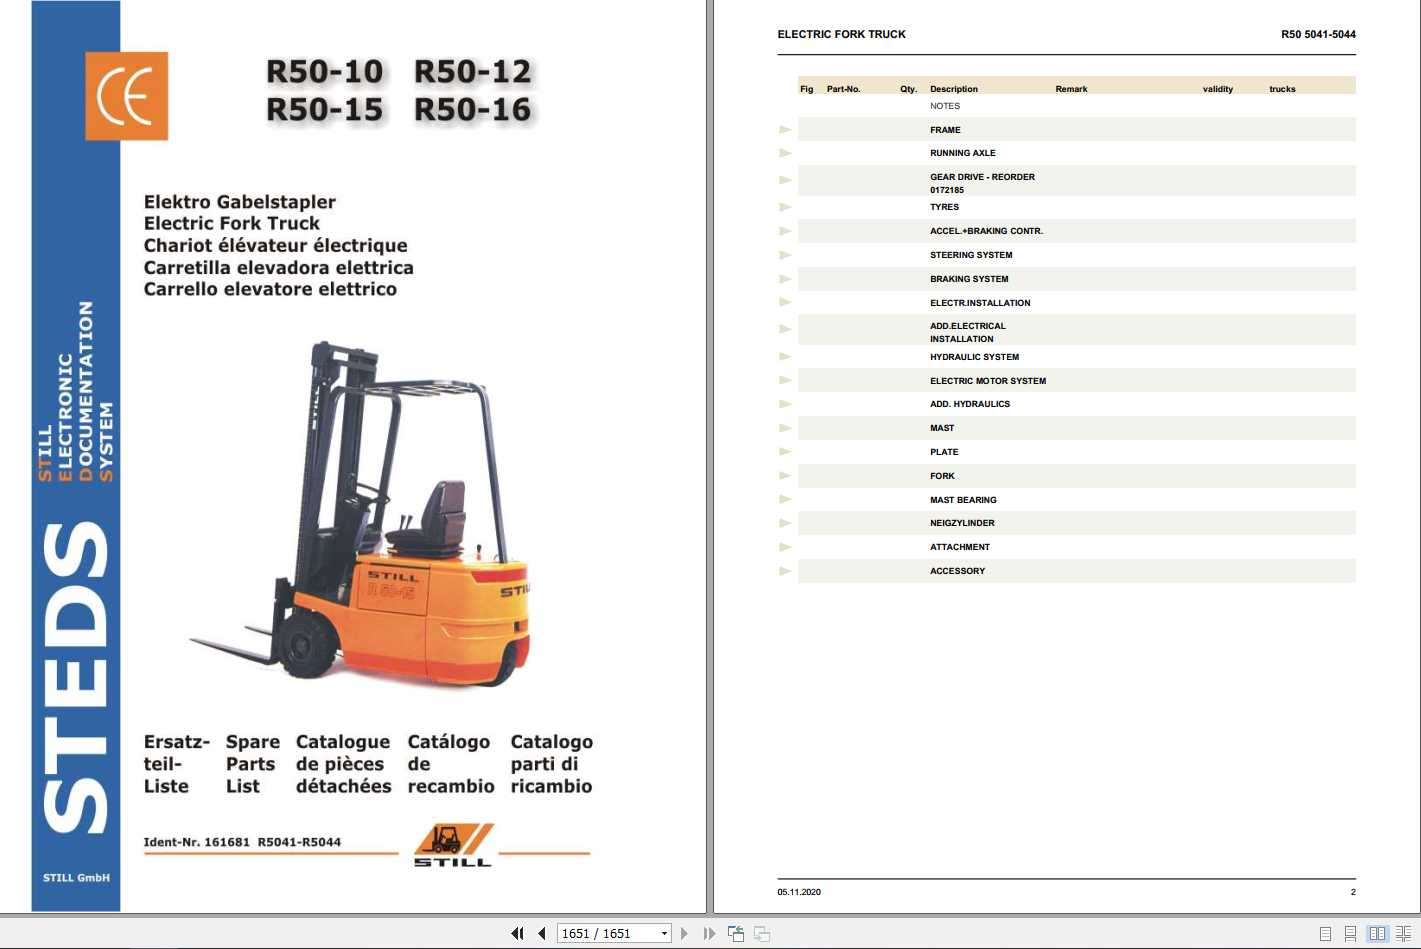 Still Electric Forklift Truck R50 10-12-15-16 Spare Parts List